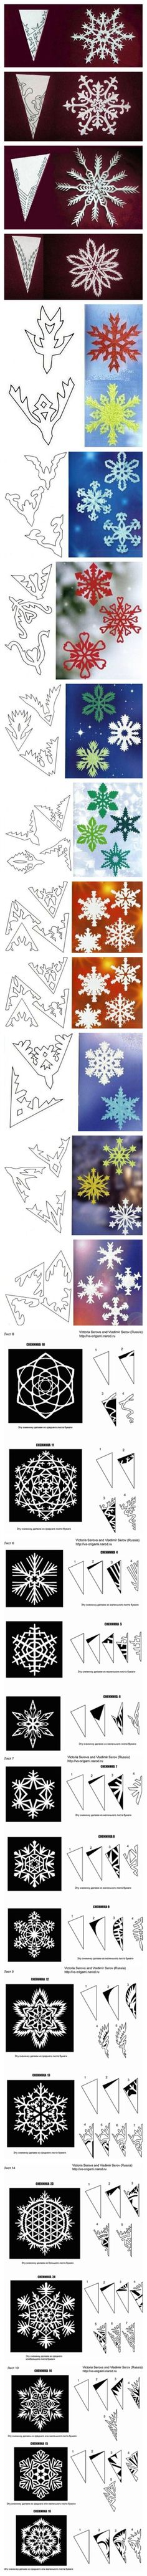 How to Make Excellent Paper Snowflakes